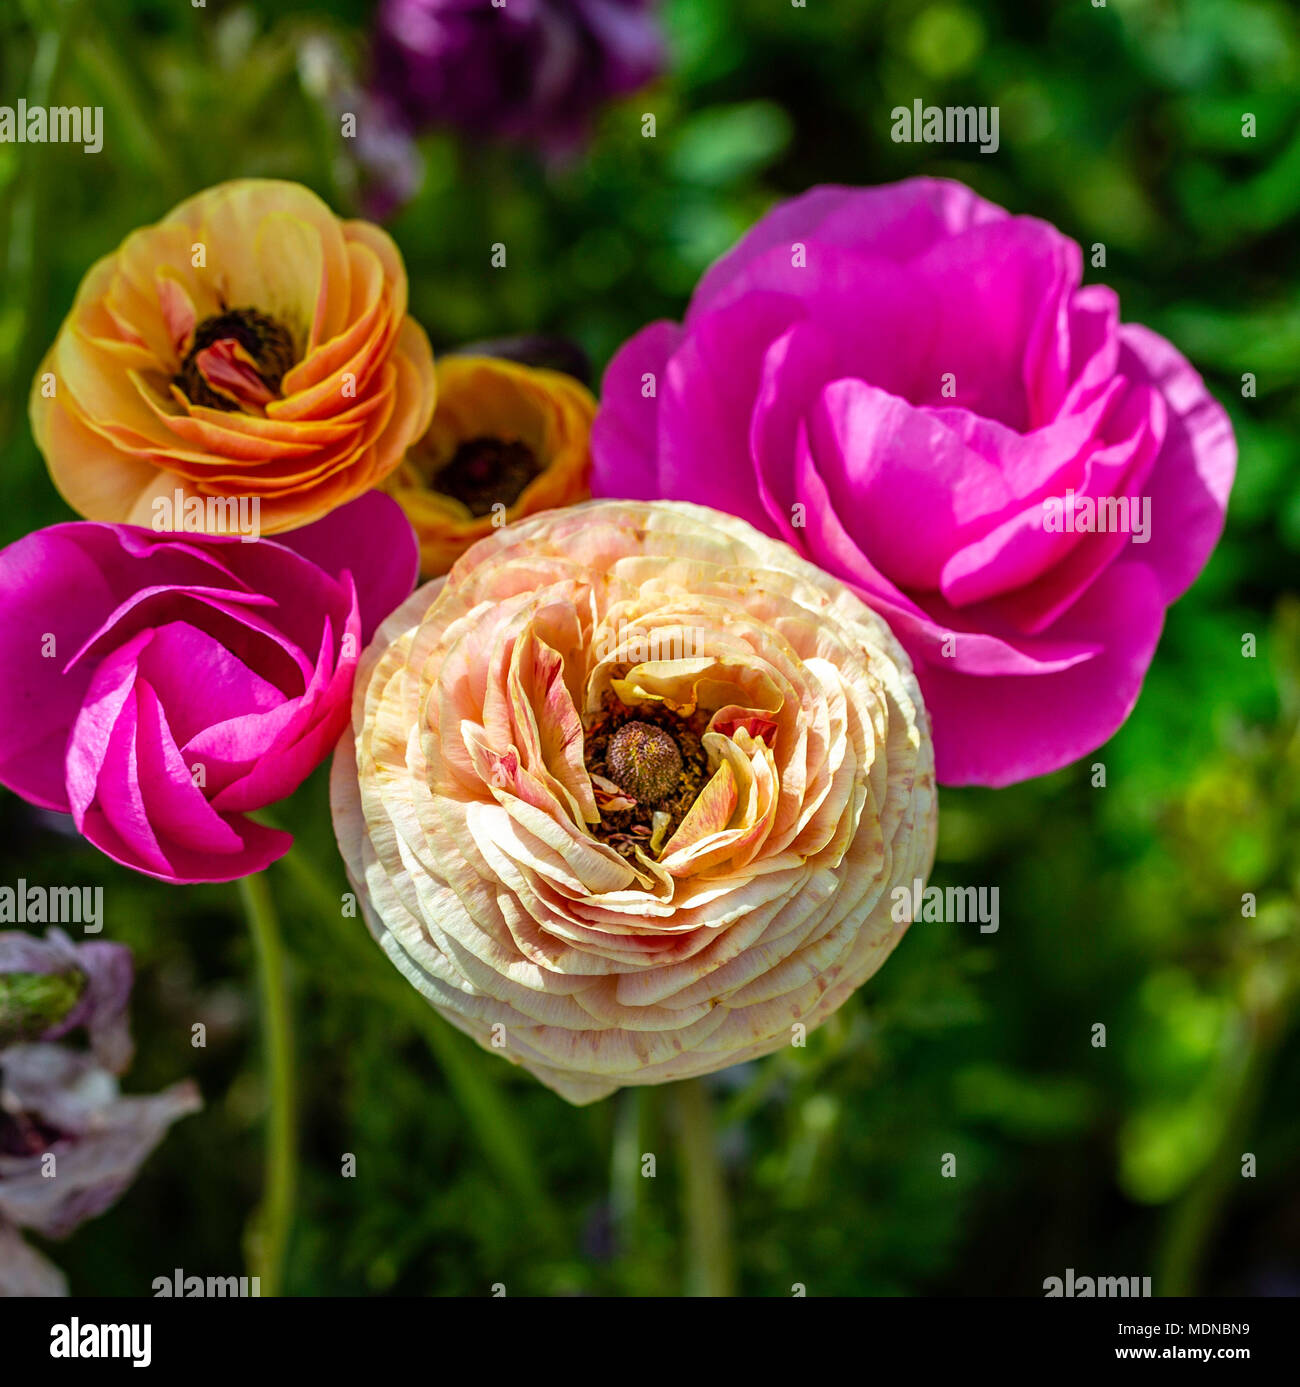 The specialization and colors of the Ranunculus were a sight to see. Even more so up close. Screen it back and add your own text for a spring message - Stock Image